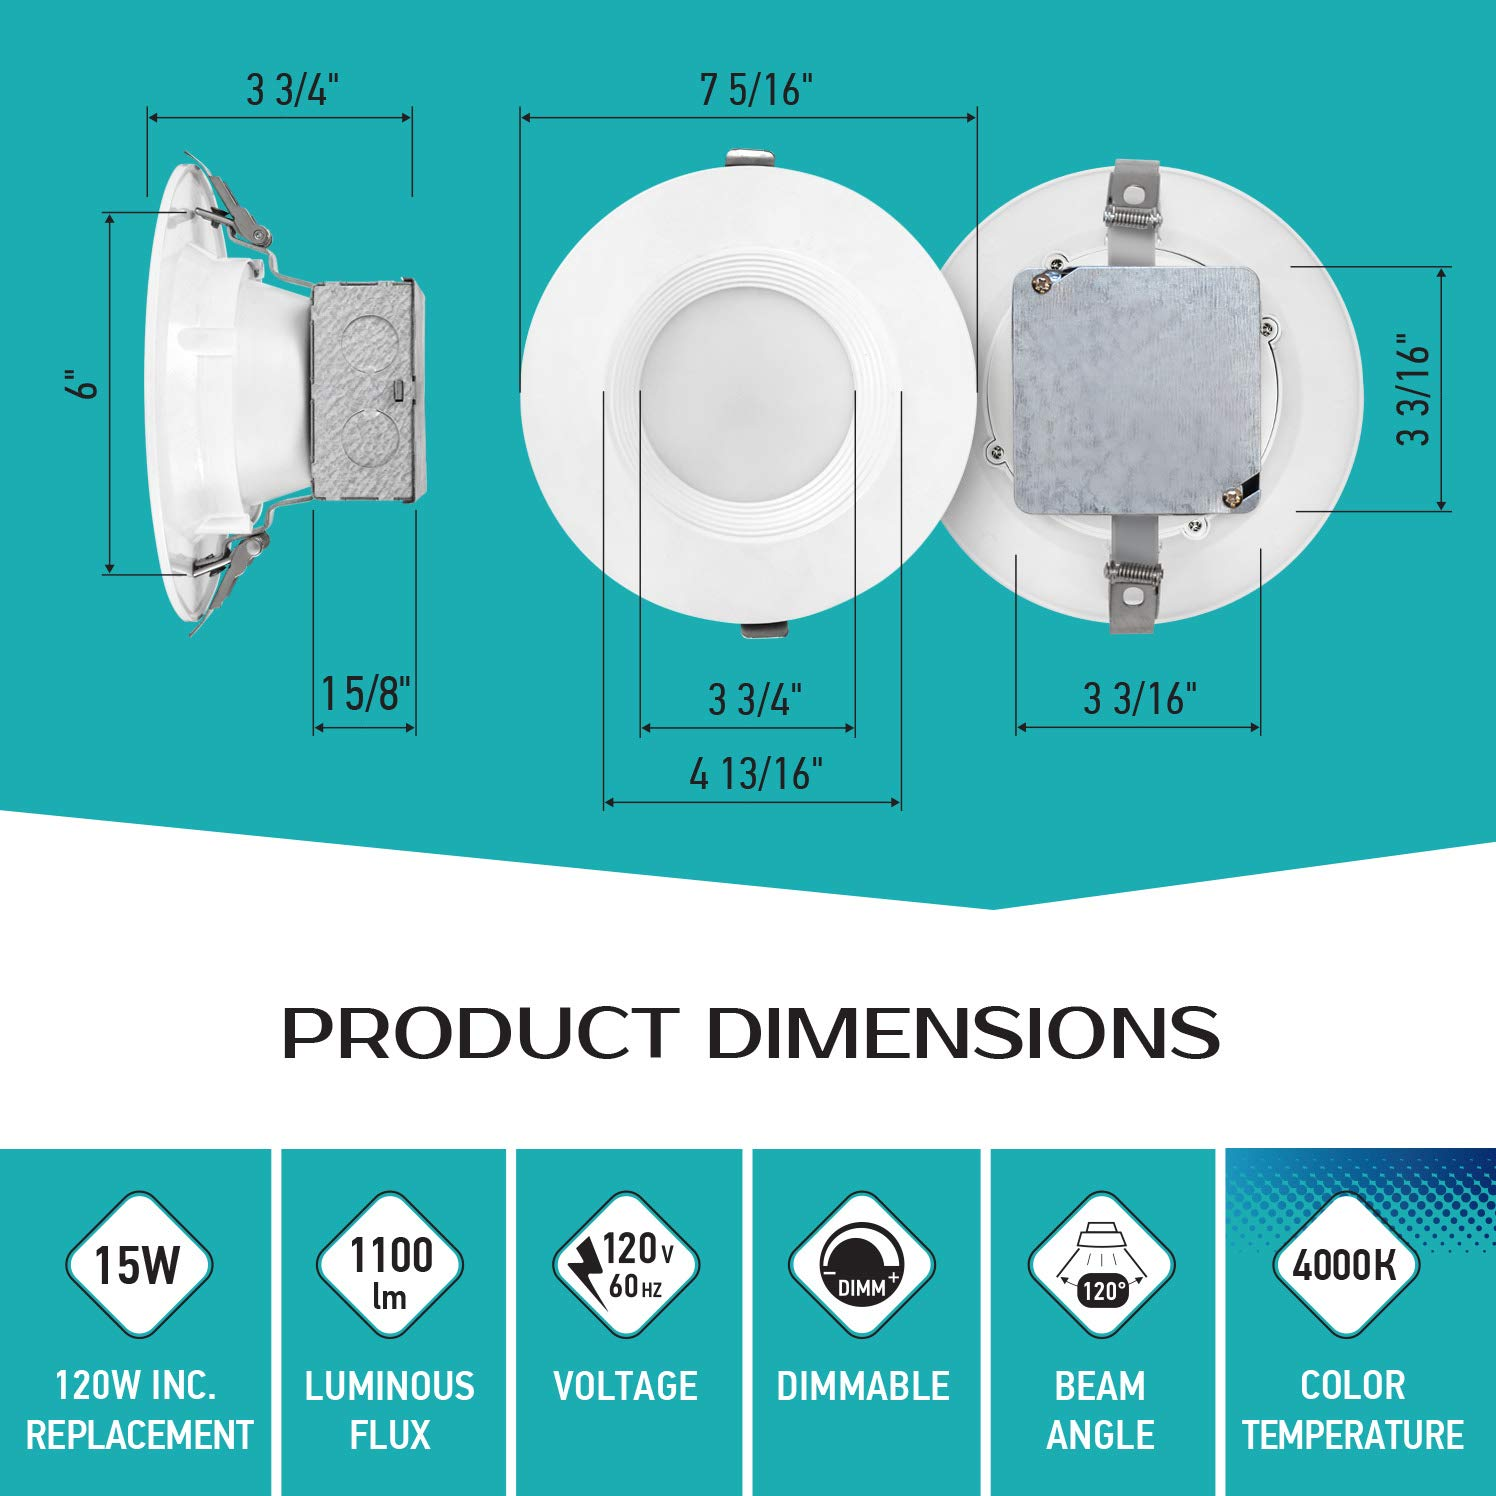 LUXTER (12 Pack) 6 inch LED Ceiling Recessed Downlight With Junction Box, LED Canless Downlight, Baffle Trim, Dimmable, IC Rated, 15W(120Watt Repl) 4000K 1100Lm Wet Location ETL and Energy Star Listed by Luxter (Image #4)